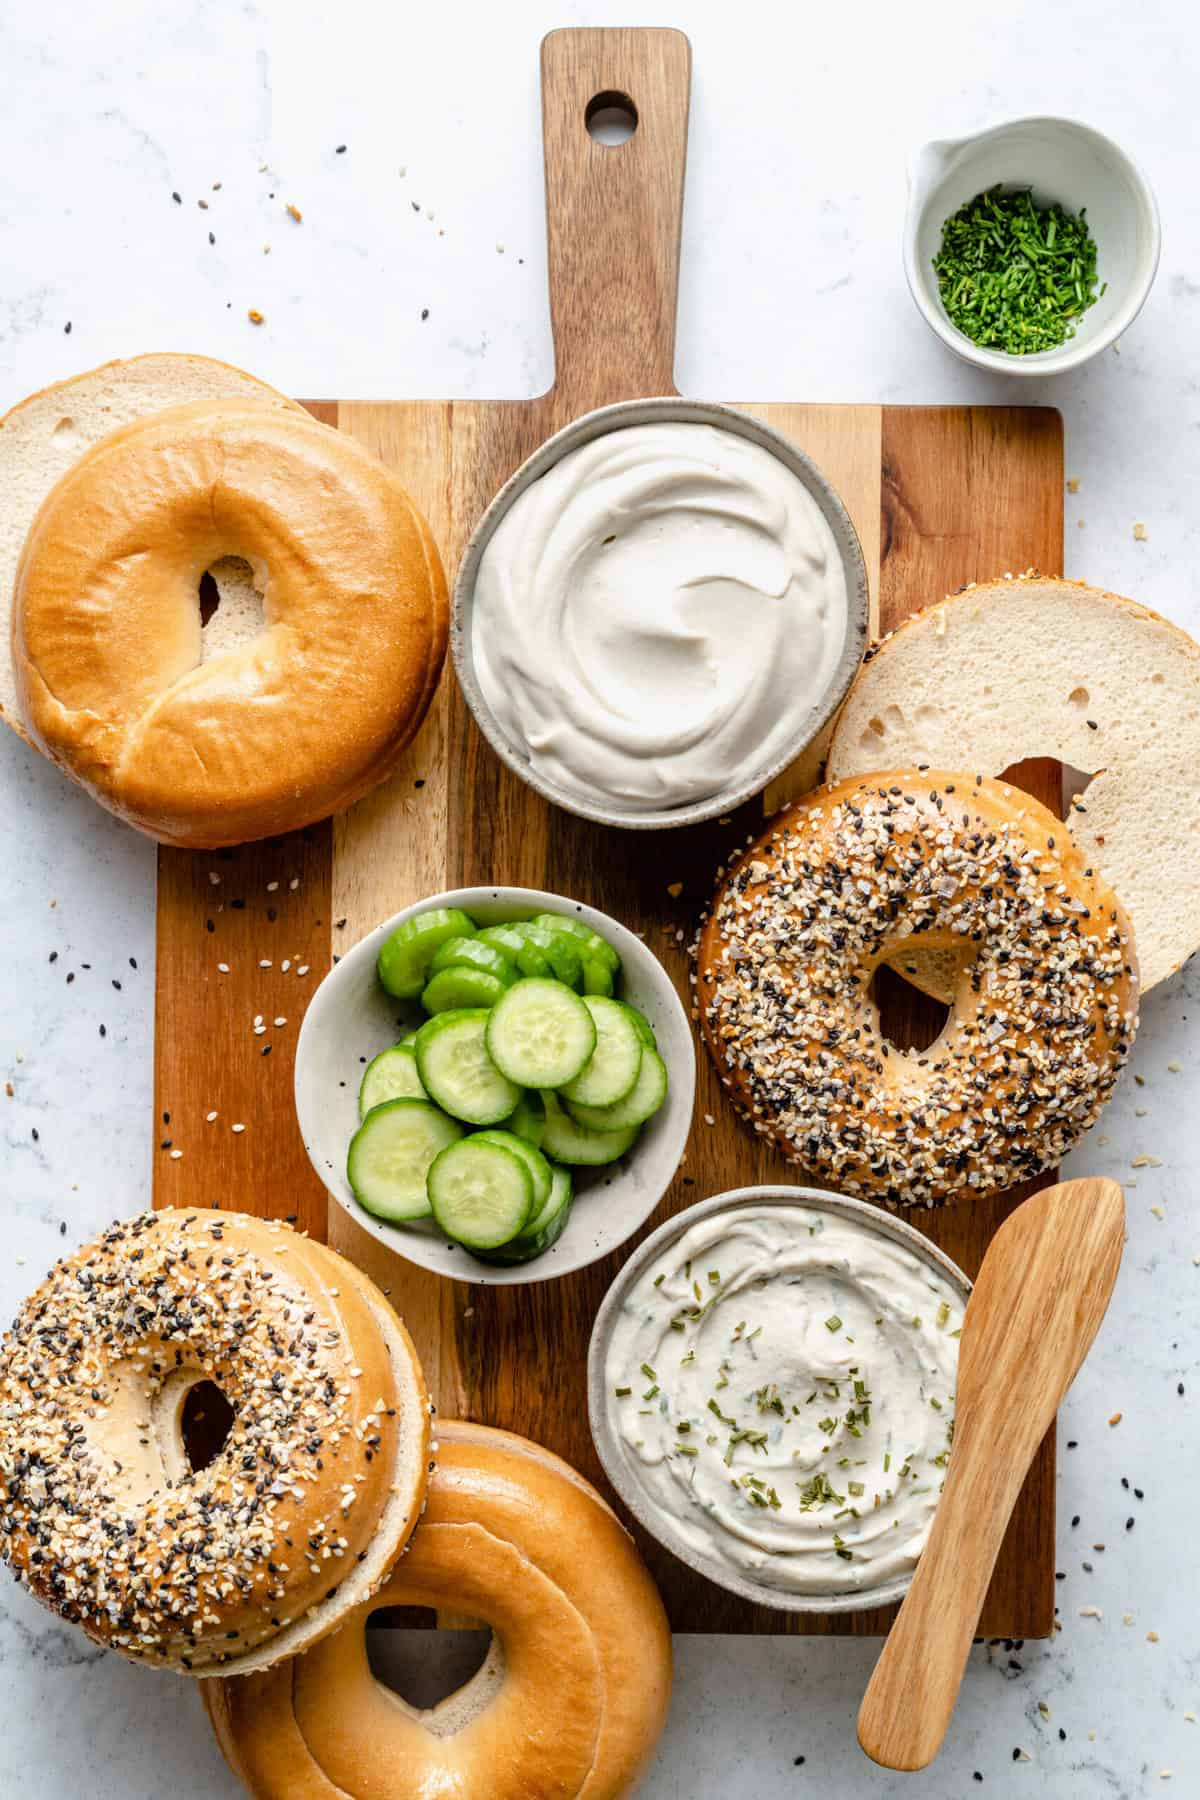 Bagels with cream cheese and cucumber slices.